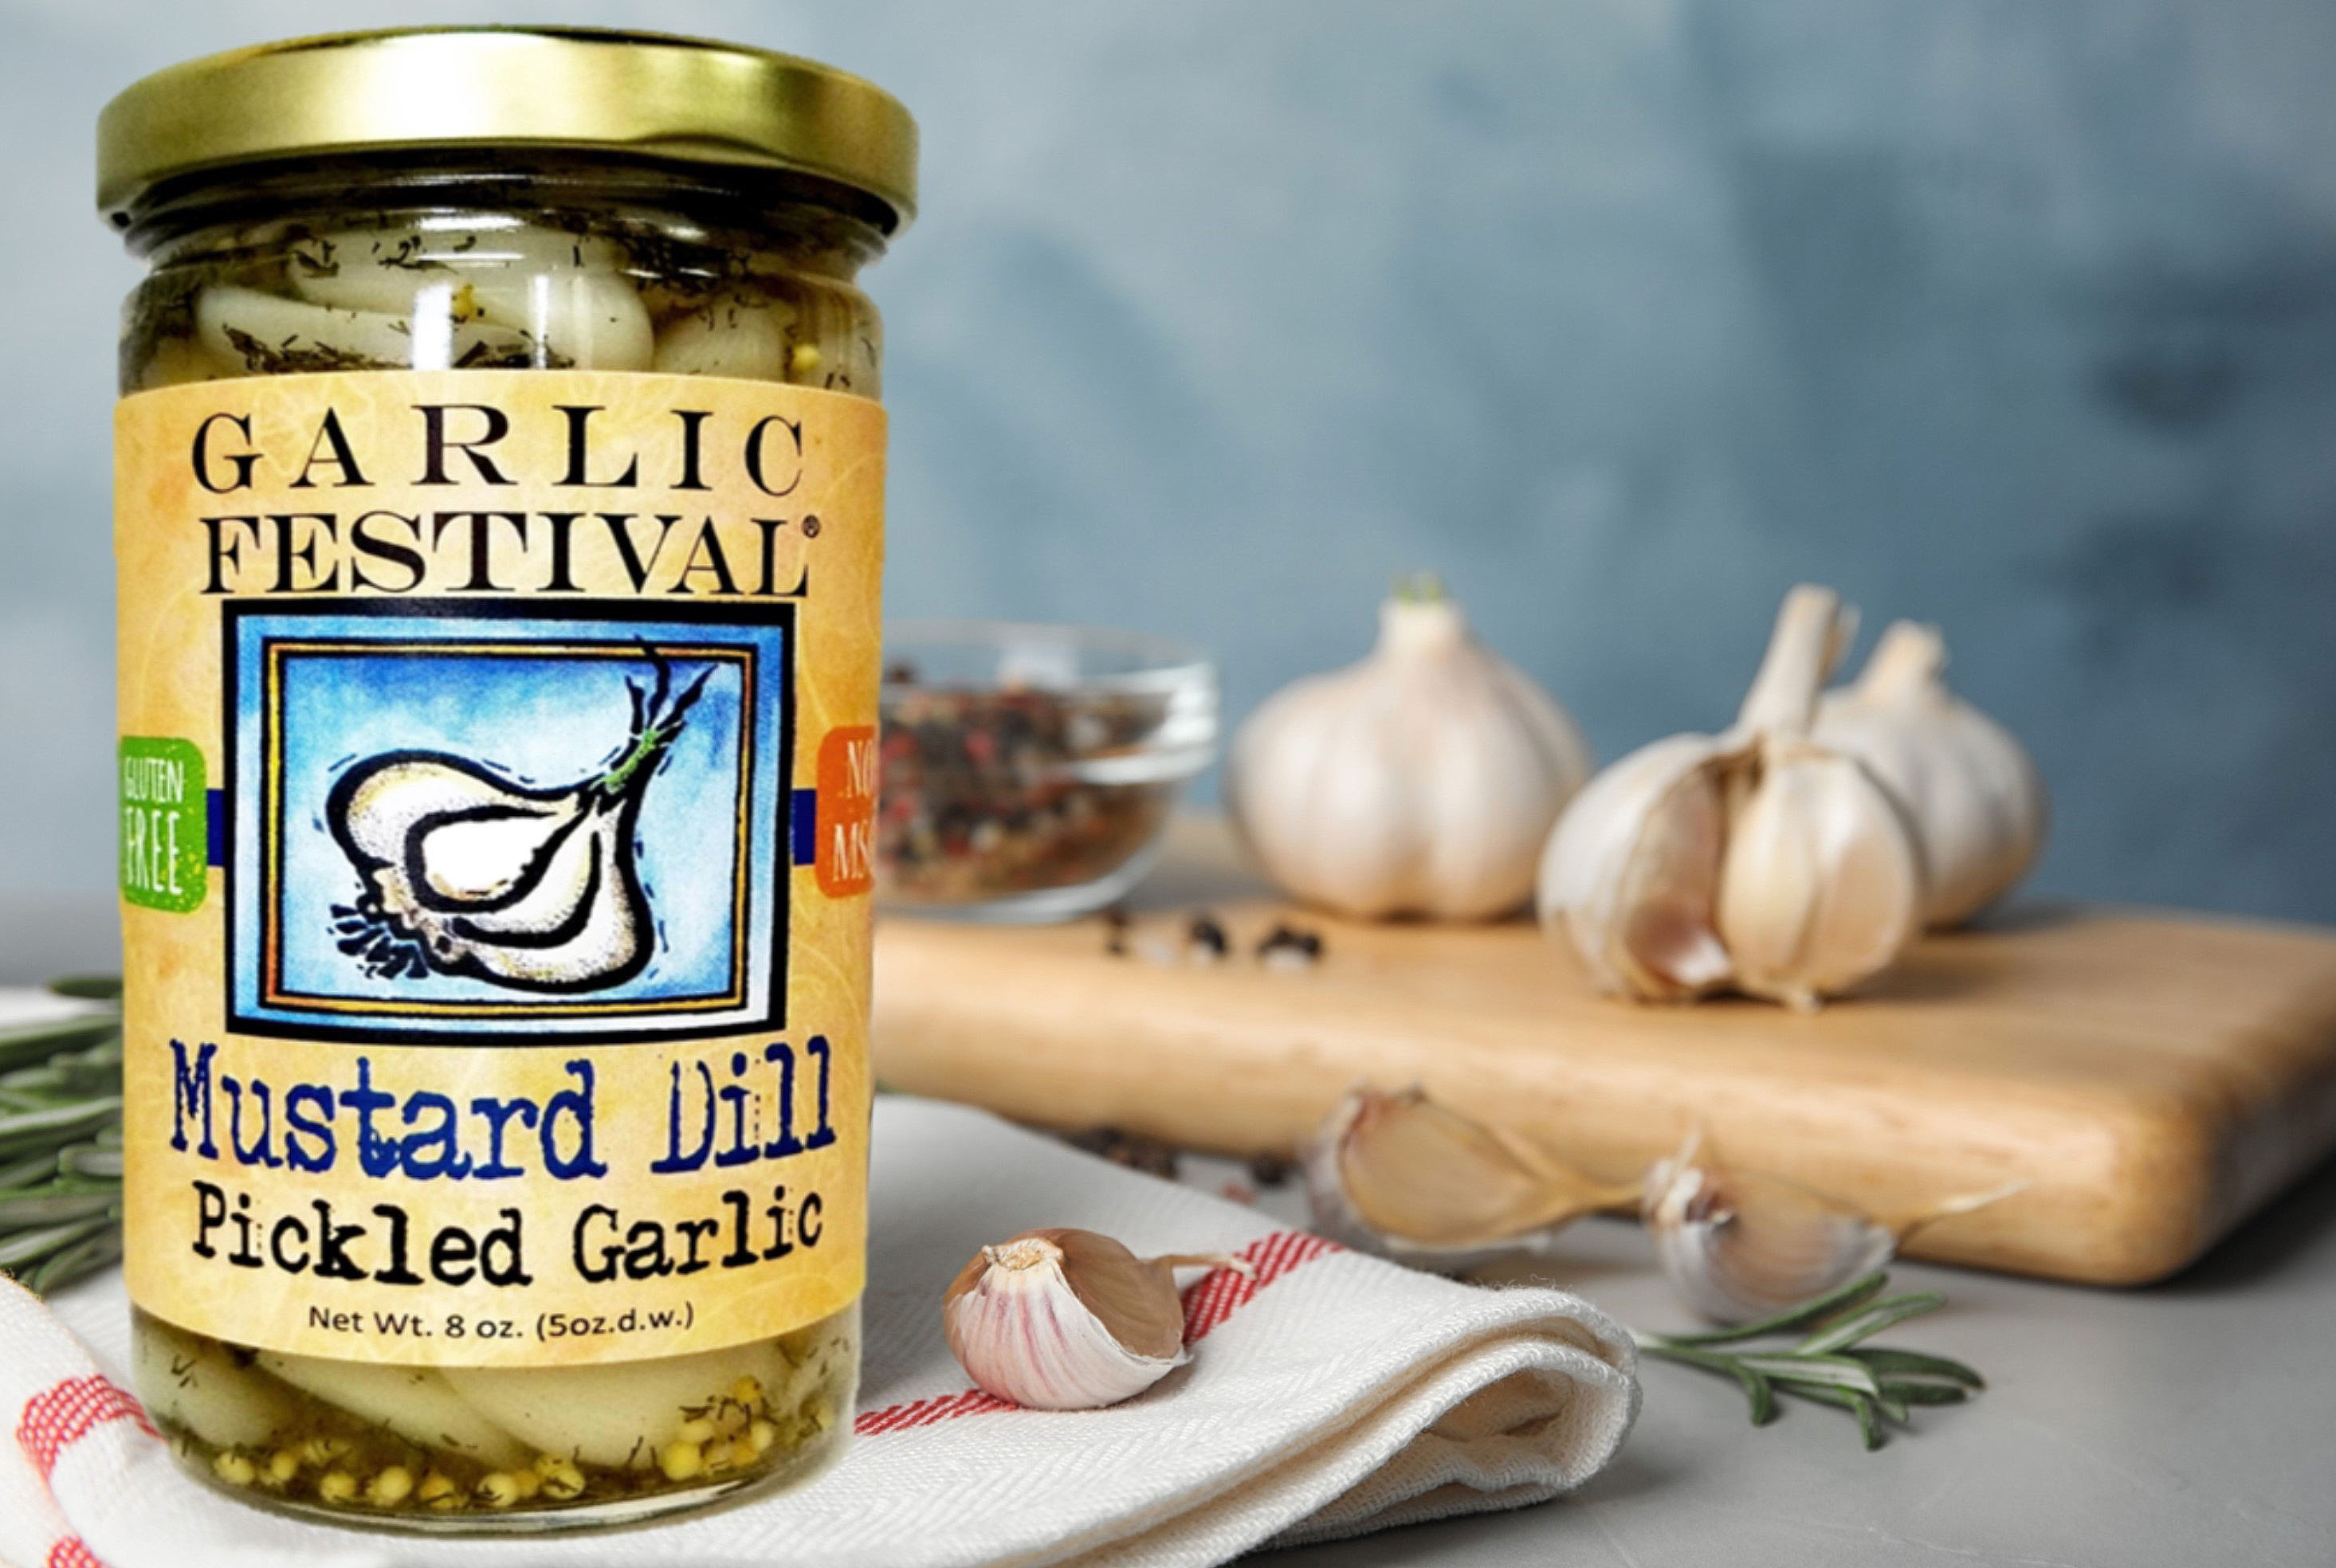 Mustard Dill Pickled Garlic 8oz.